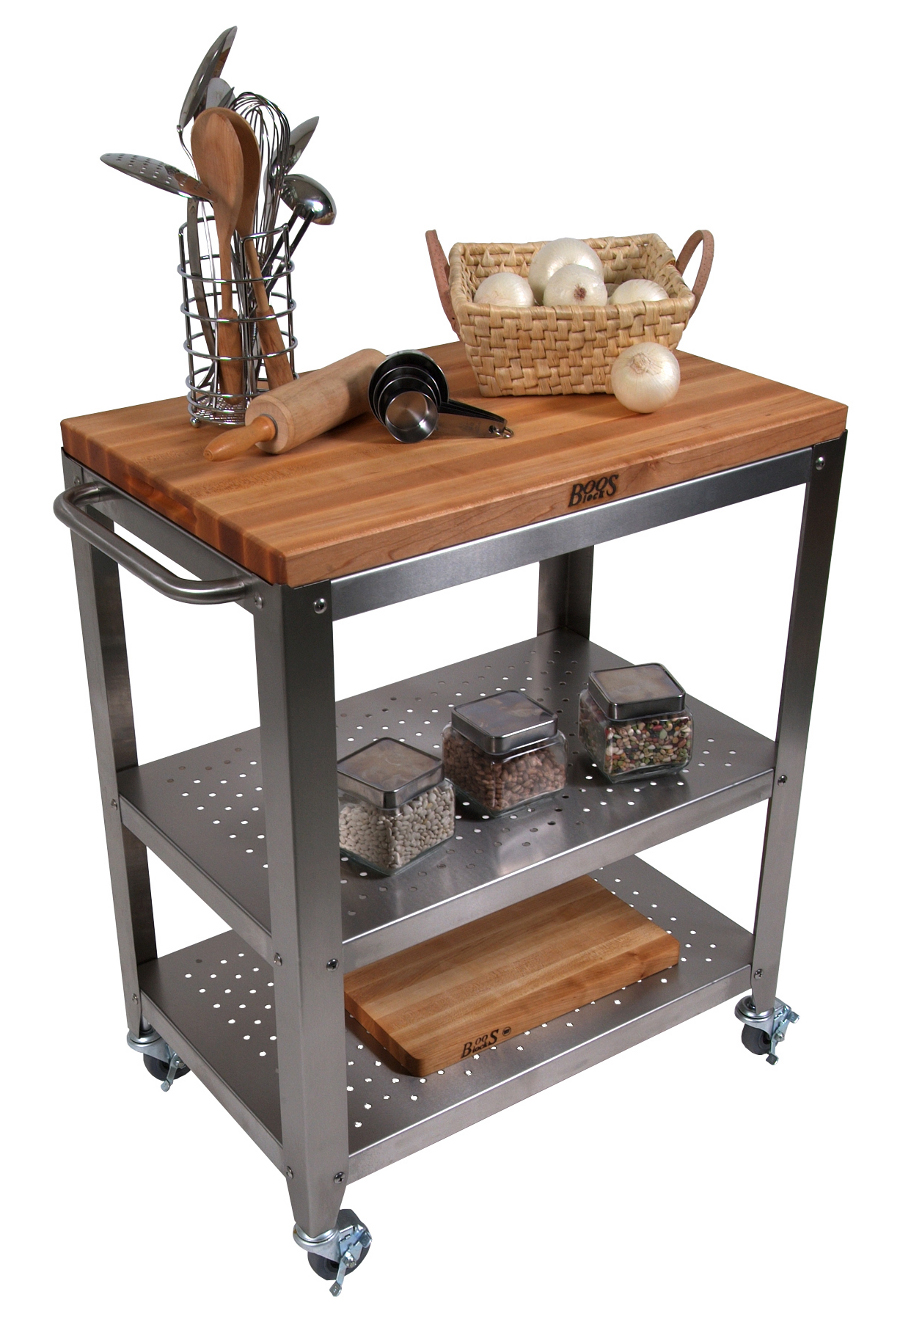 Boos Cucina Culinarte Cart Removable 30x20 Maple Butcher Block